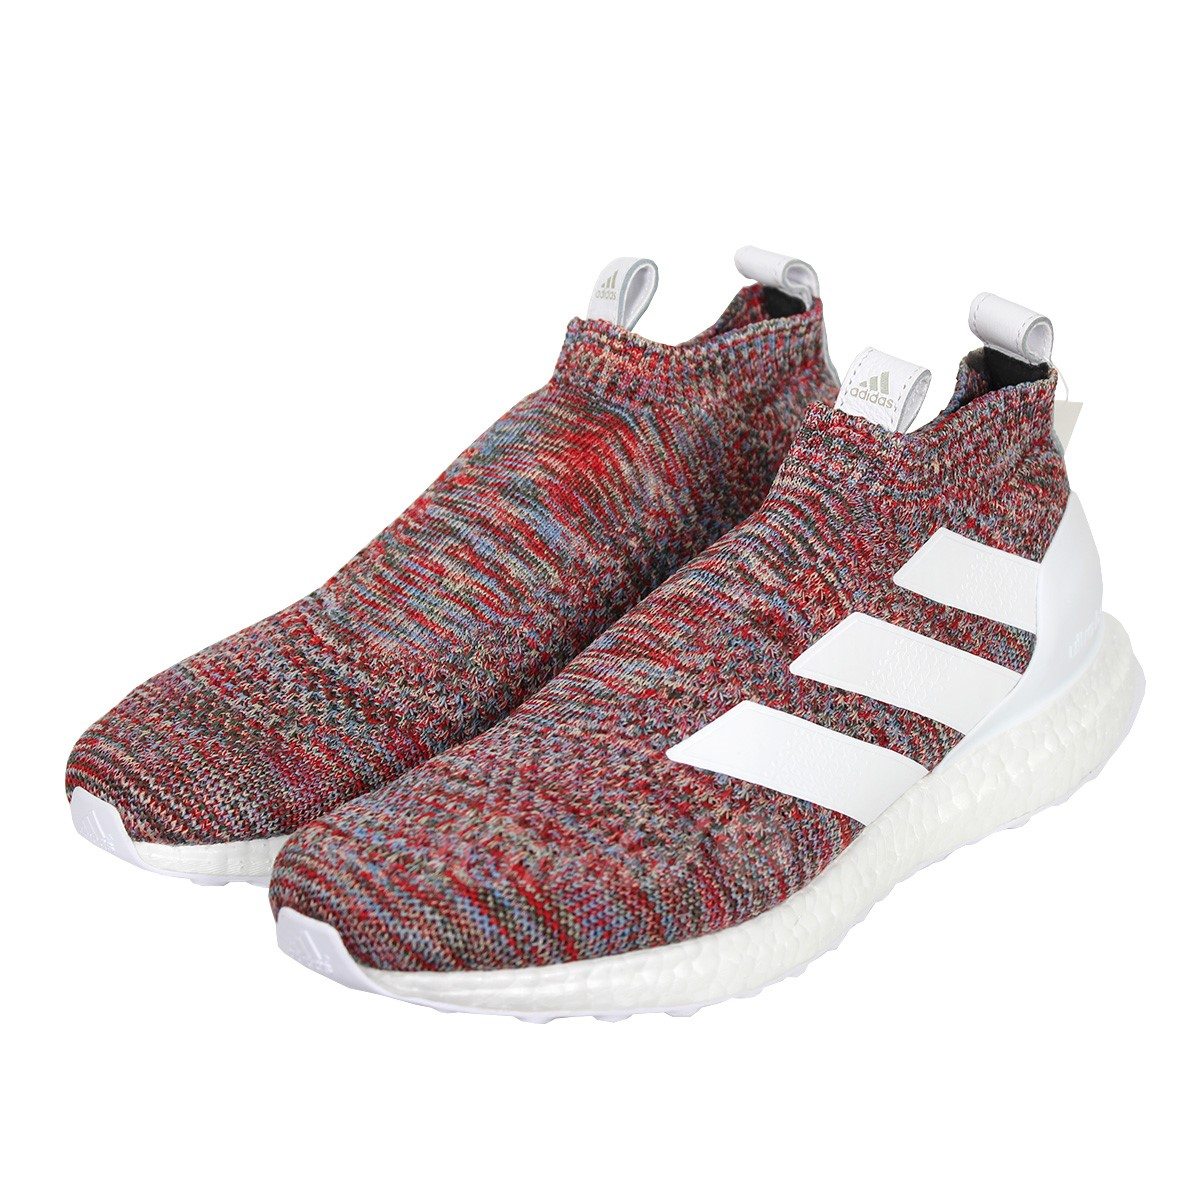 adidas X KITH 18SS A16 ULTRABOOST KISH red size: 26. 0cm